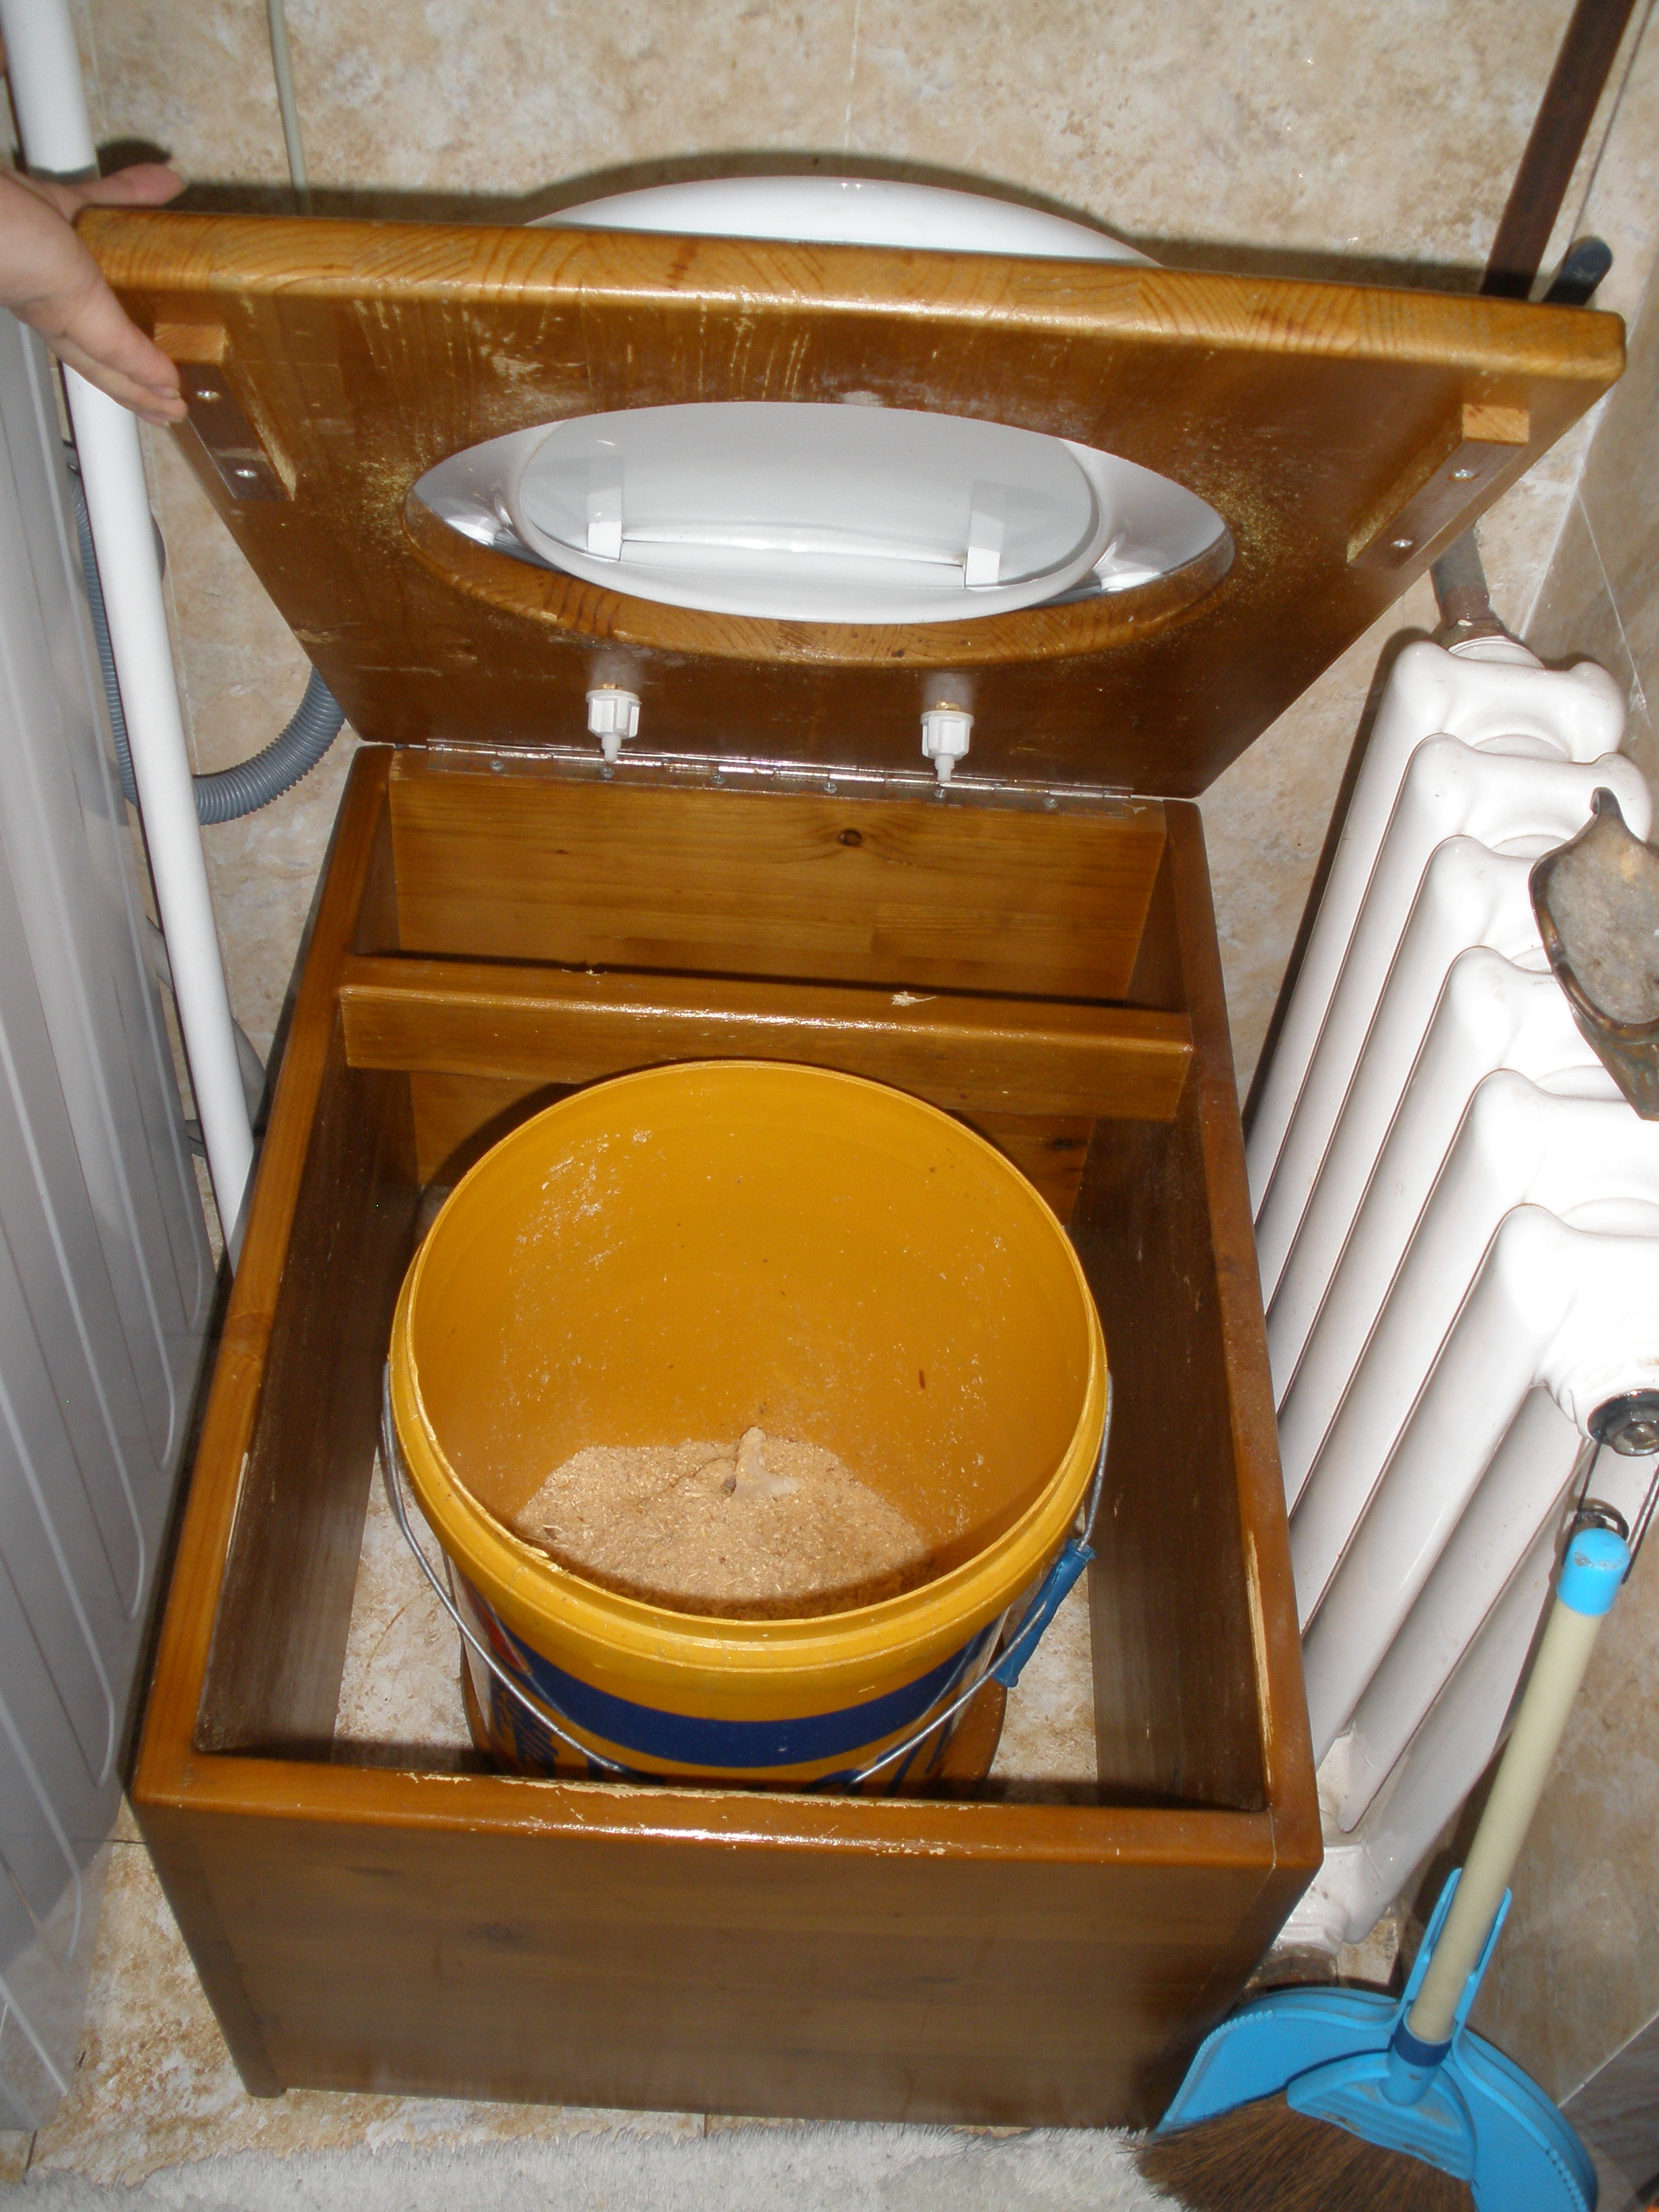 file humanure dry toilet inside view mongolian family